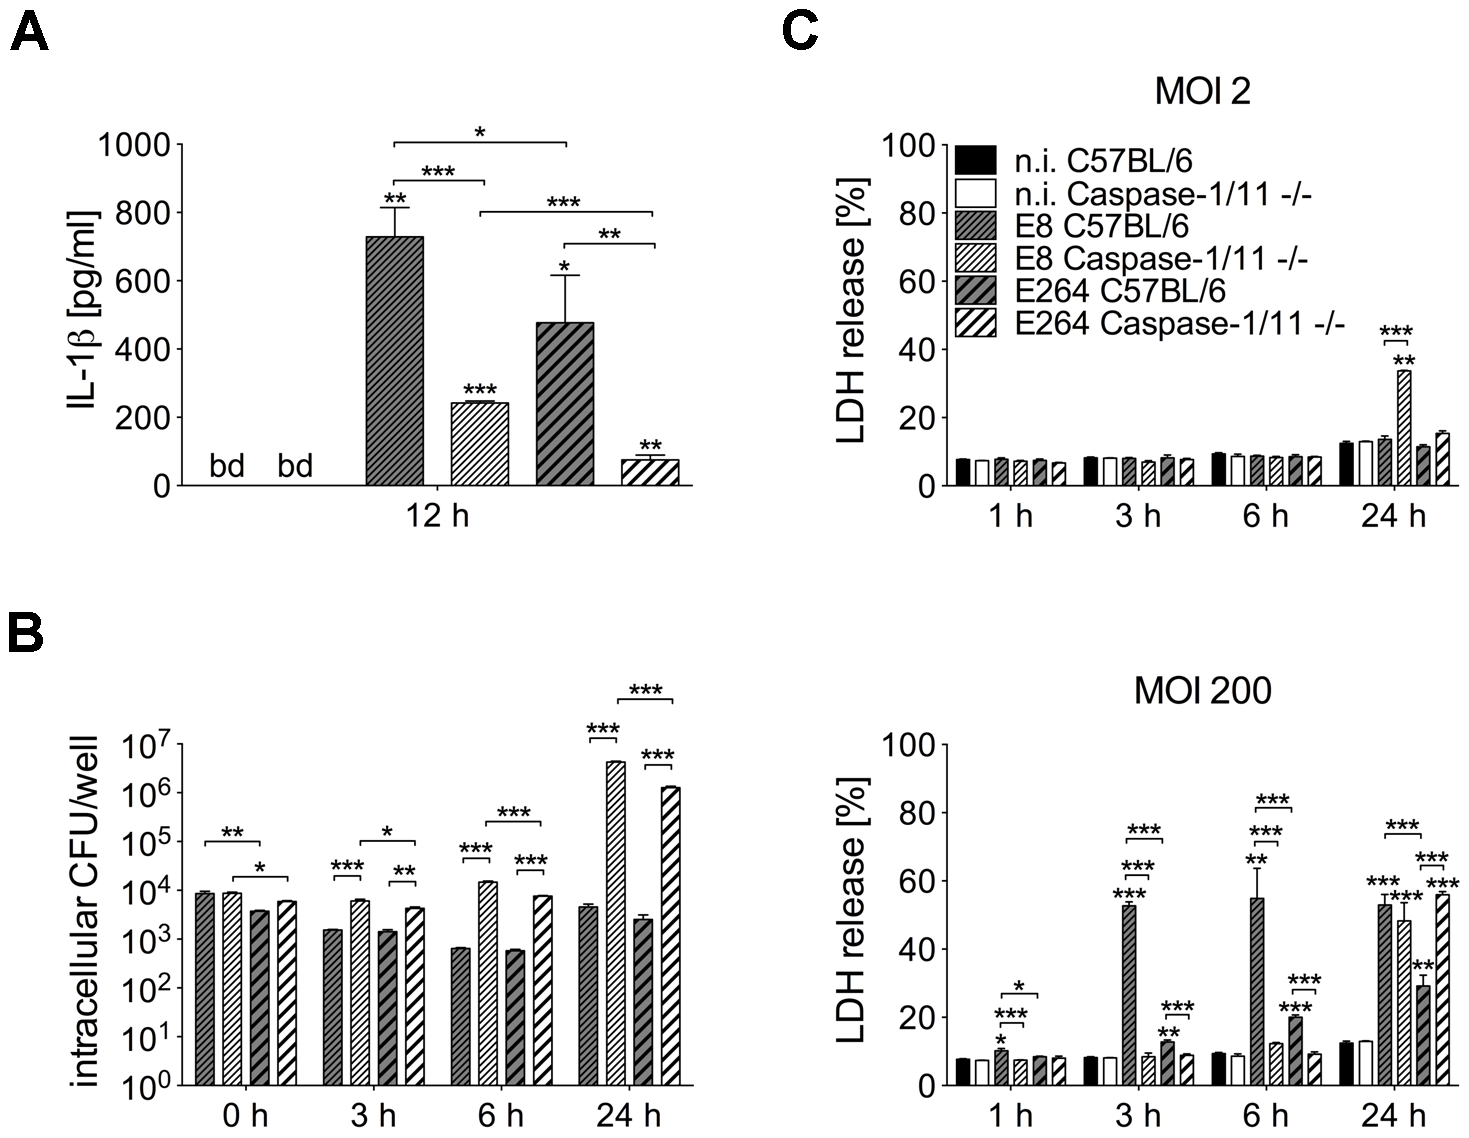 Course of cell death differs in caspase-1/11-deficient and wild-type macrophages infected with <i>Burkholderia</i>.